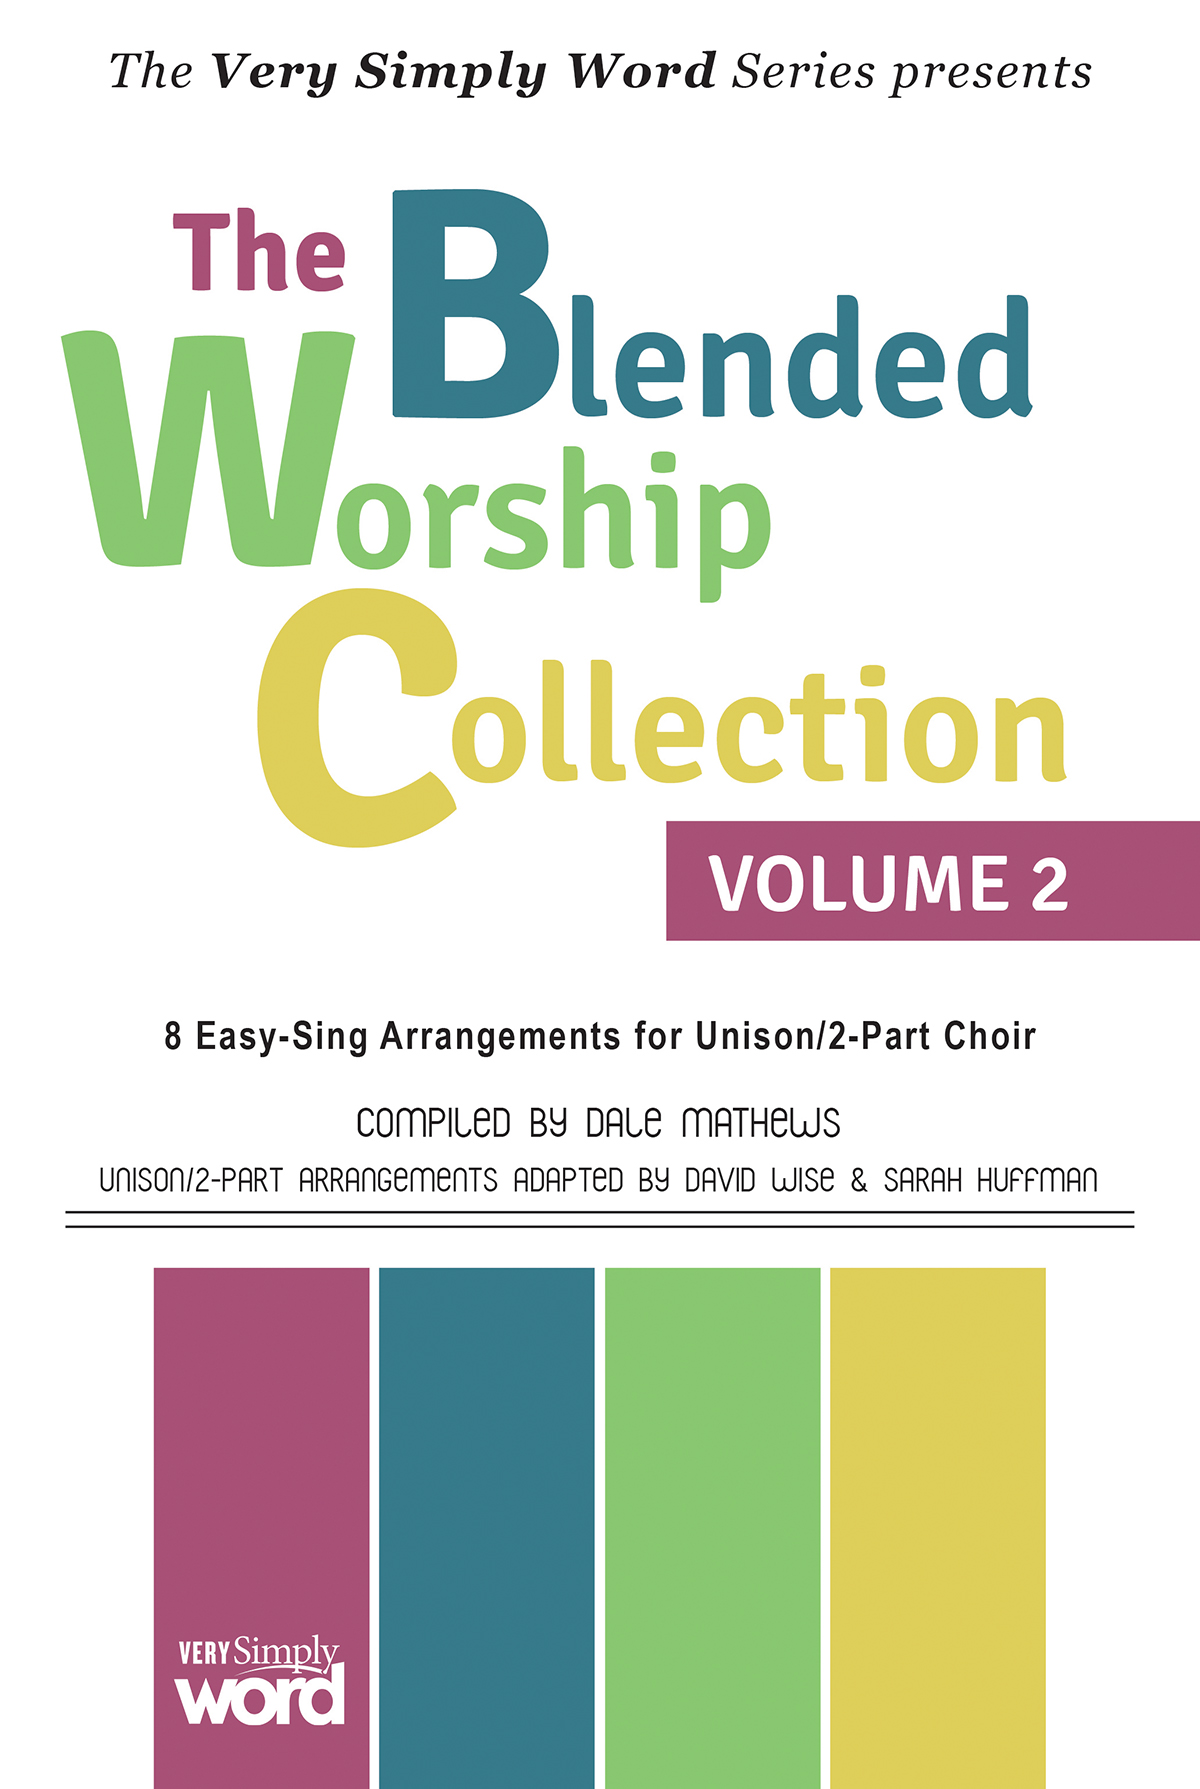 The Blended Worship Collection Volume 2